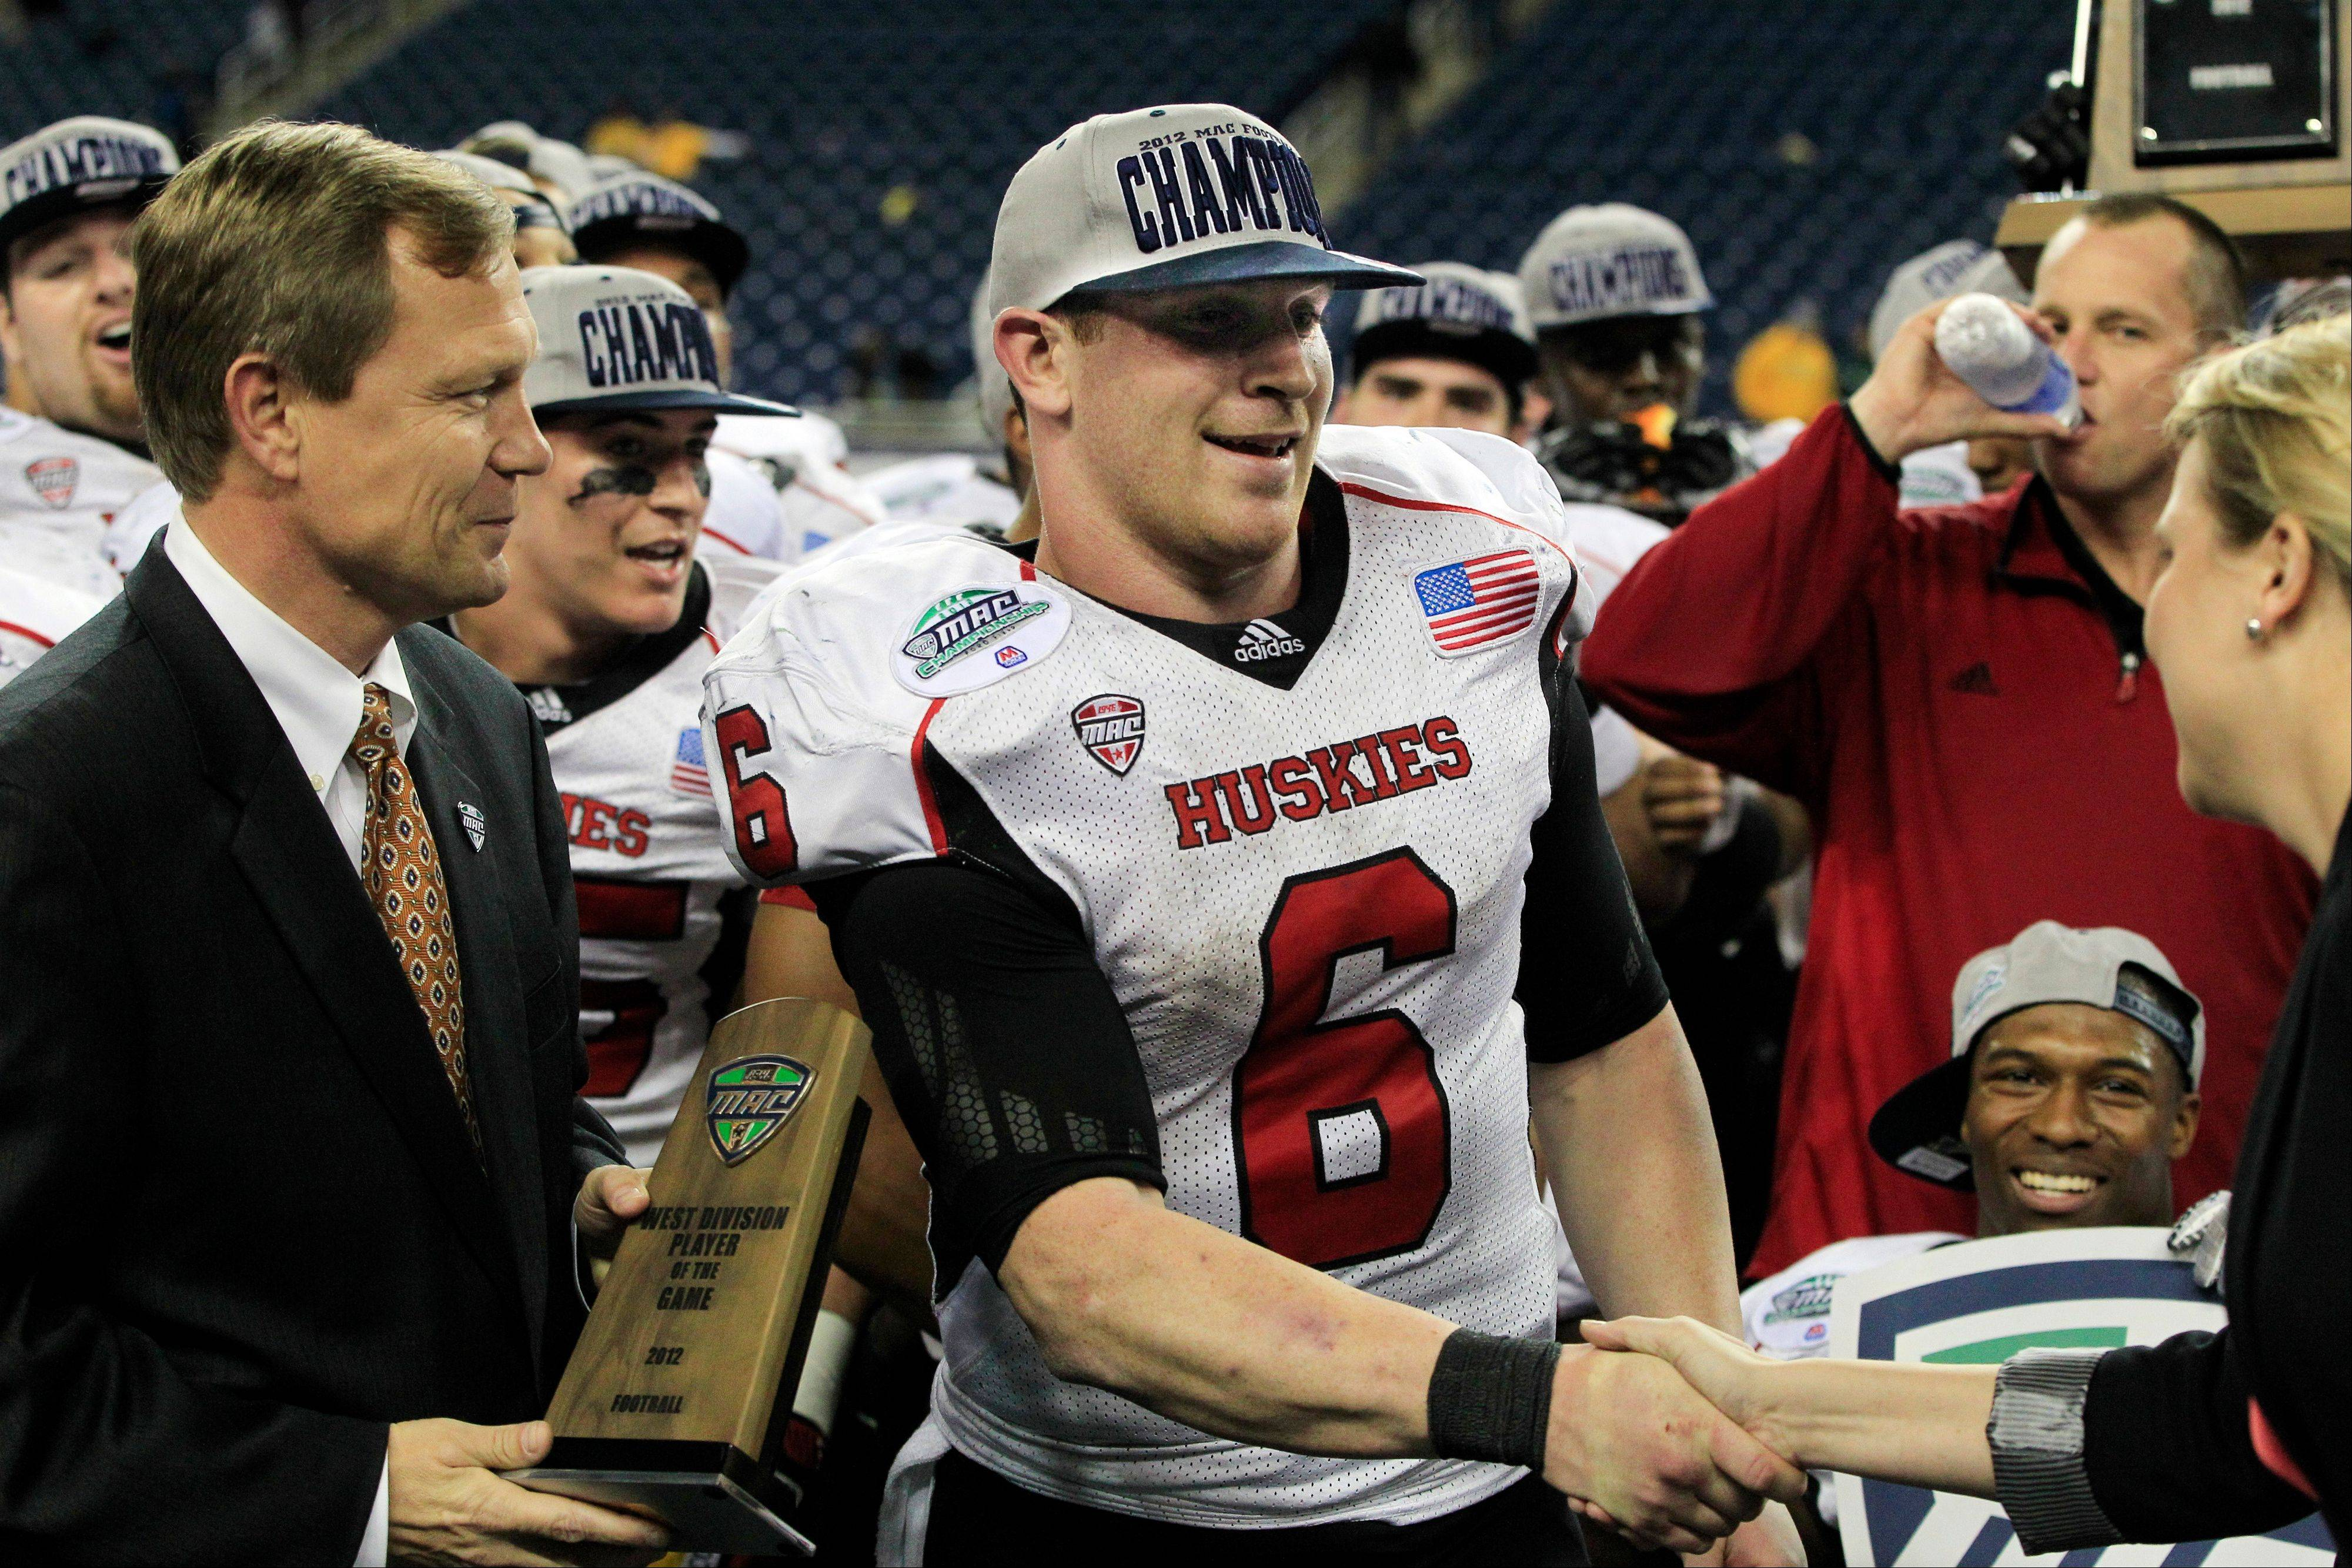 Northern Illinois quarterback Jordan Lynch (6) receives the most valuable player award Friday after the Huskies defeated Kent State 44-37 in double overtime.